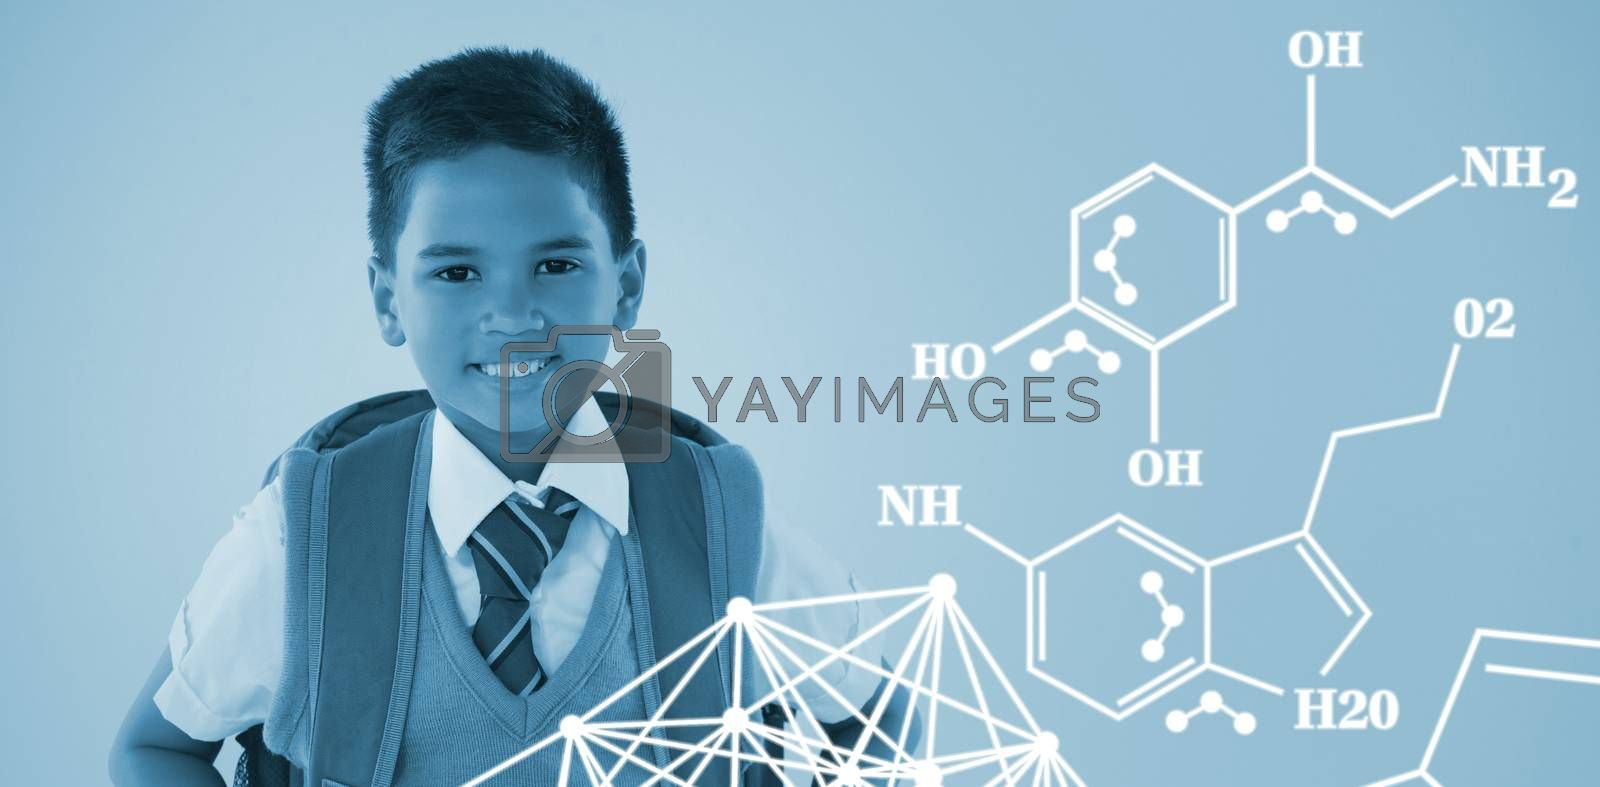 Composite image of chemical structure against white background by Wavebreakmedia